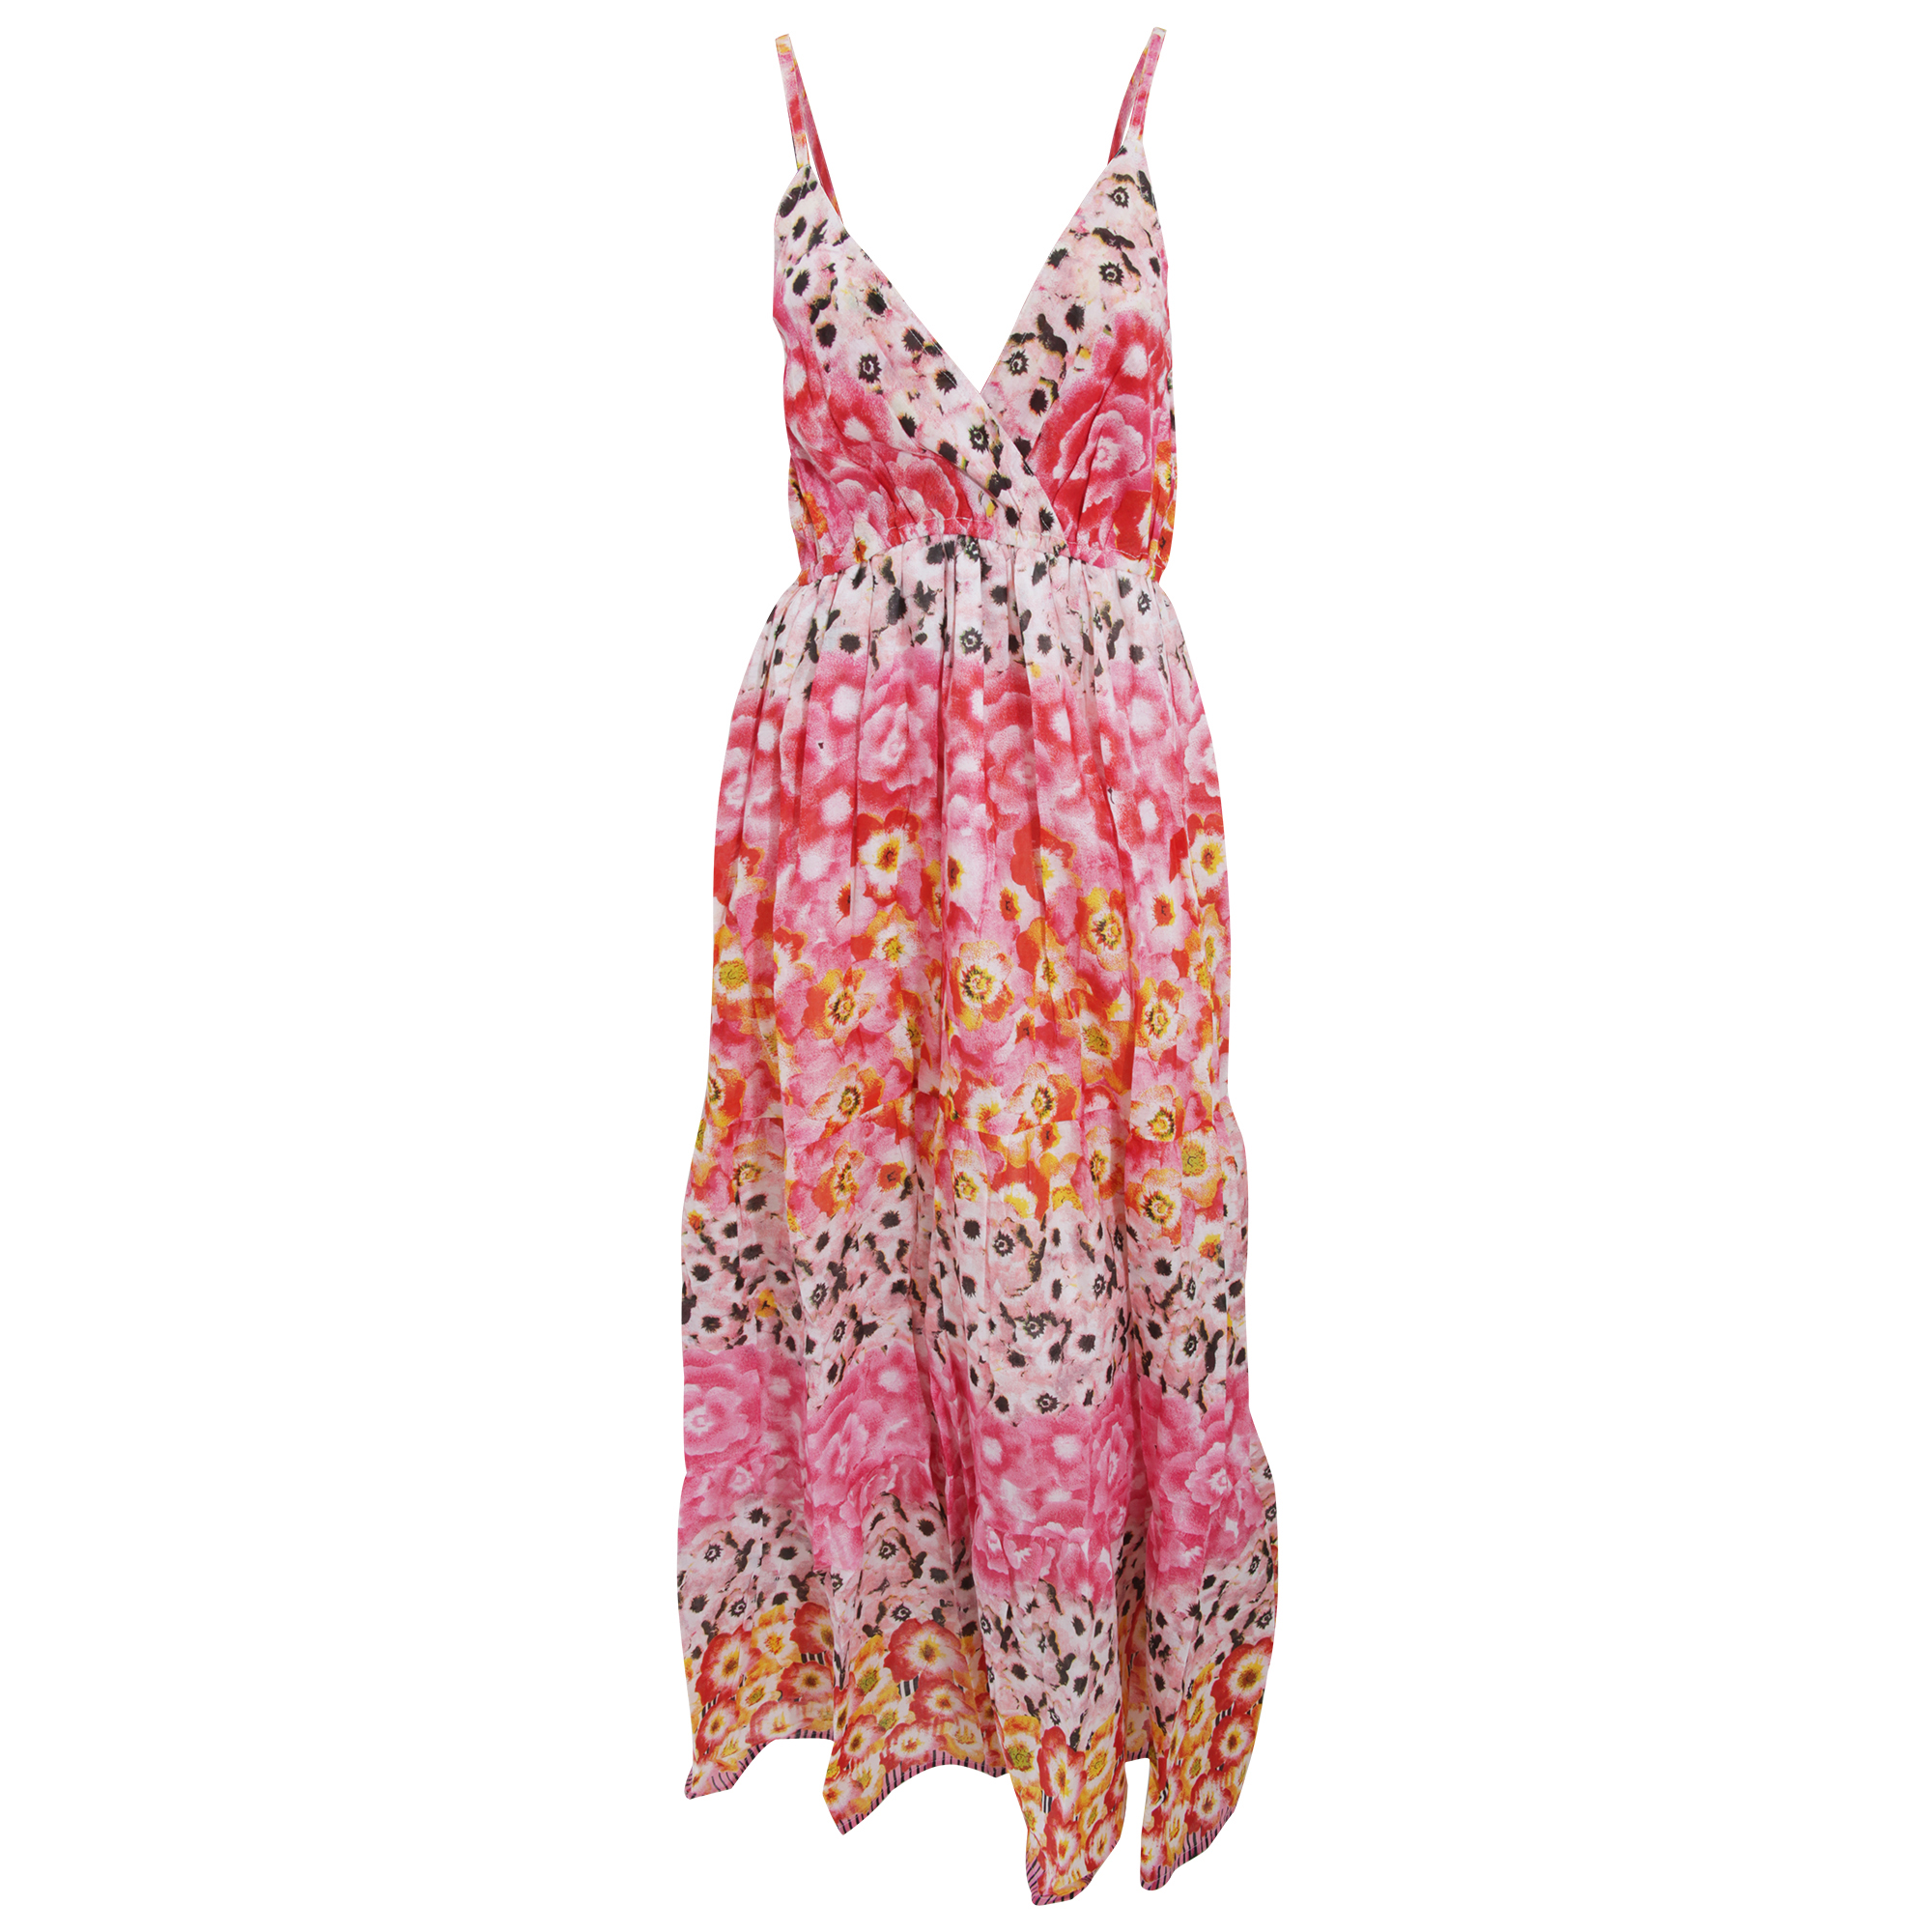 Bulk, Wholesale, Job Lot, Clearance Assorted Clothing (Dresses, Tops, Footwear And More) (Box 25) (Womens Pink Flower Maxi Dresses (Set Of 35))